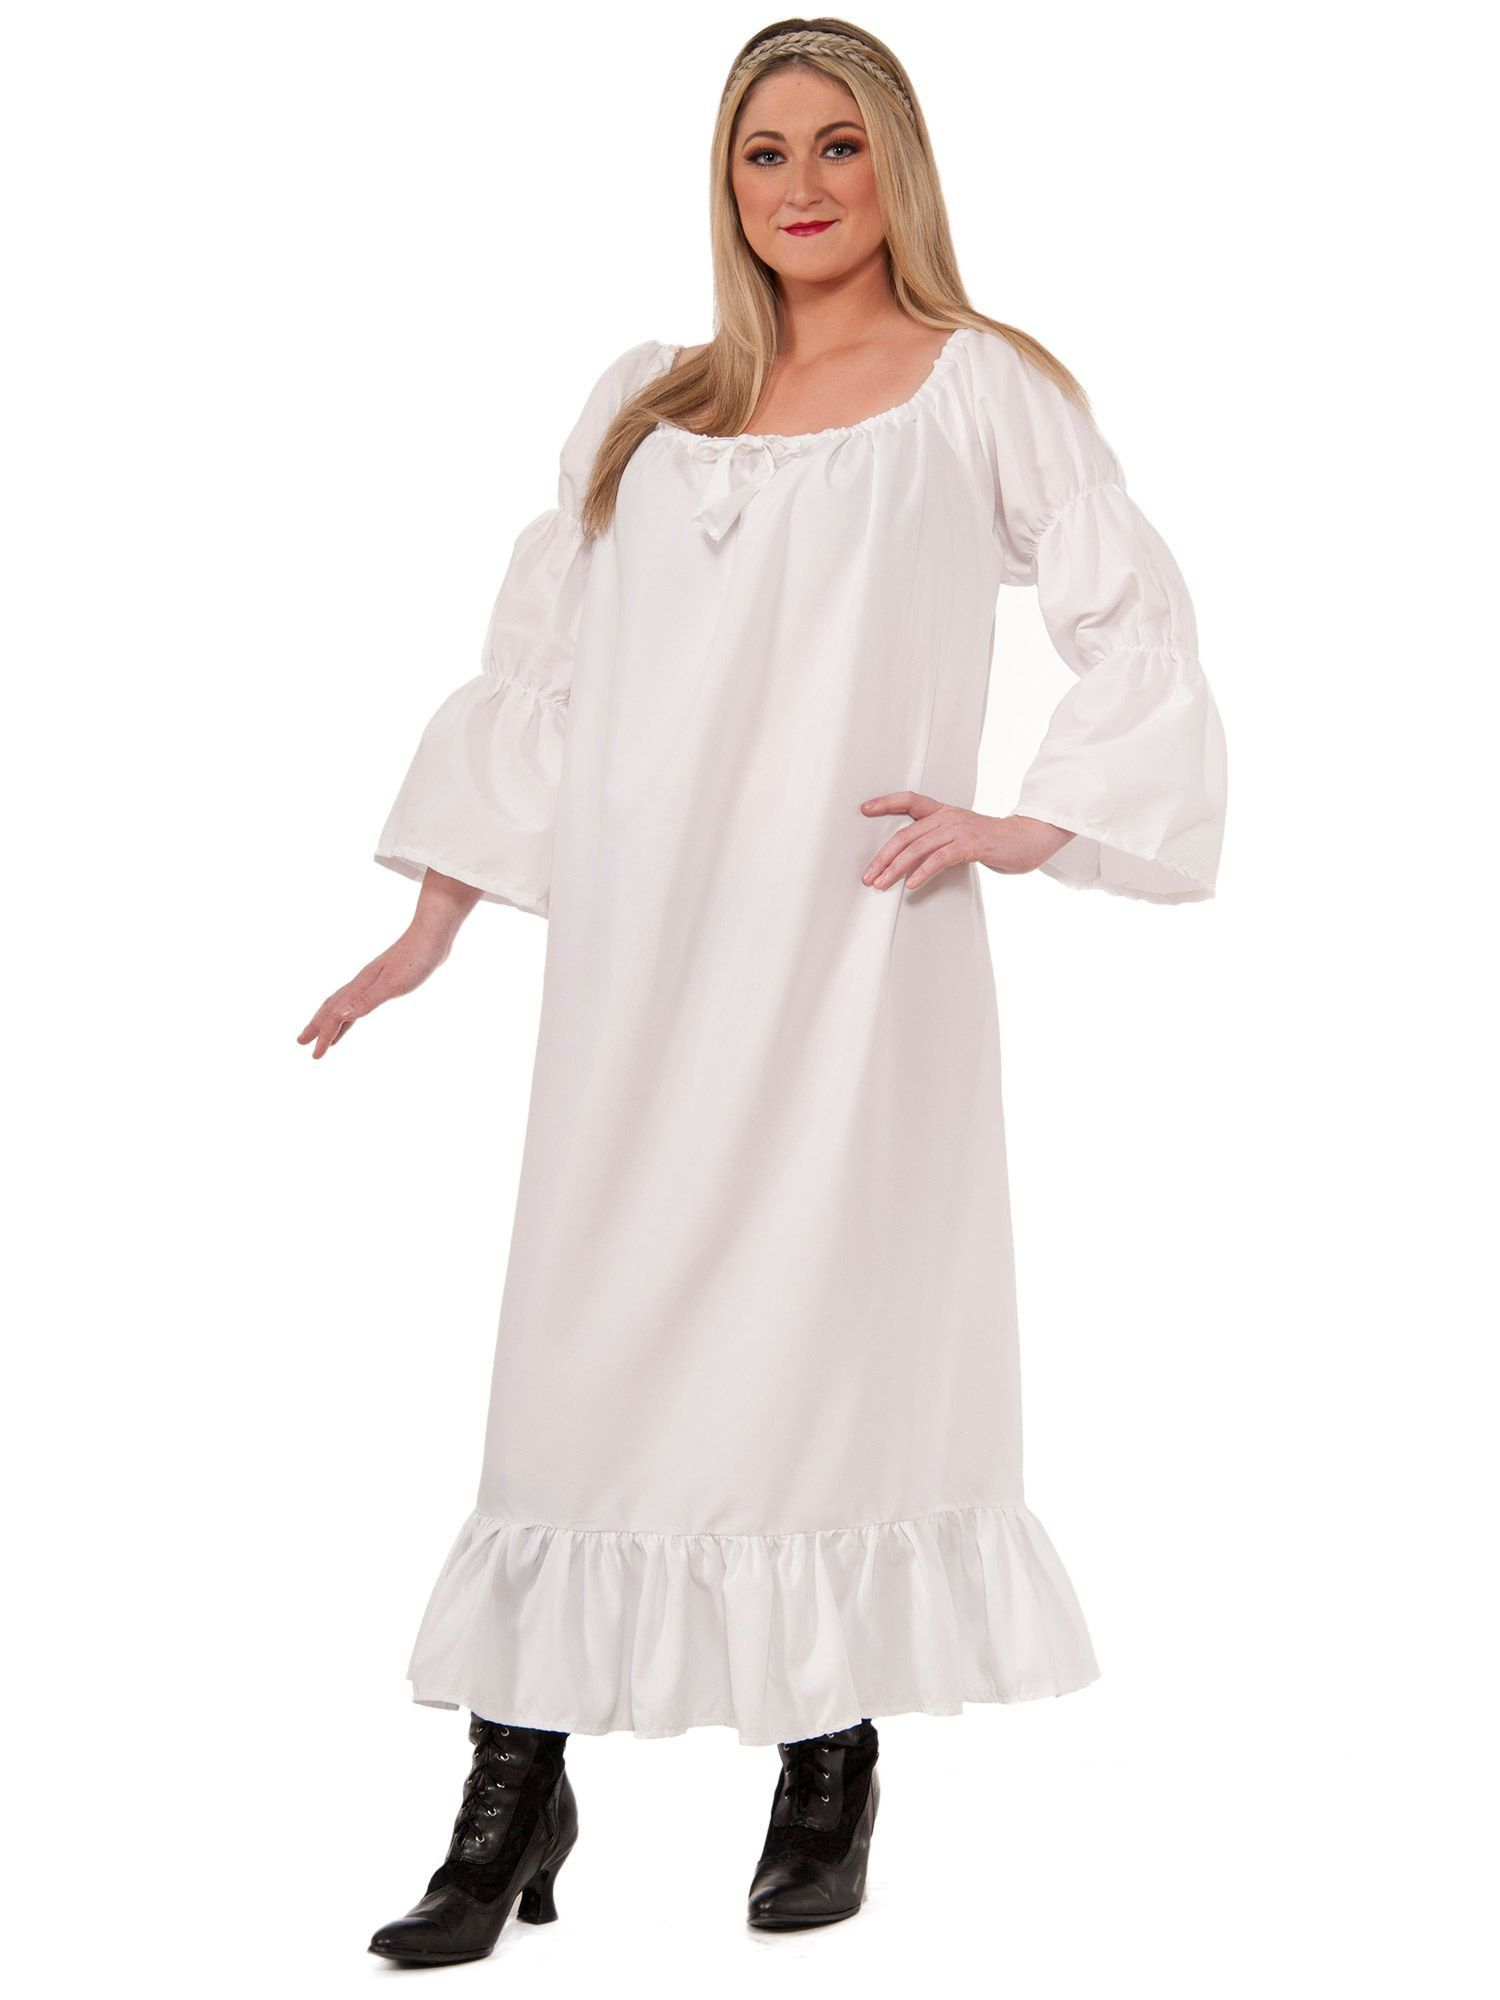 Plus Size Medieval Chemise Adult Plus Size Costume - Womens ...